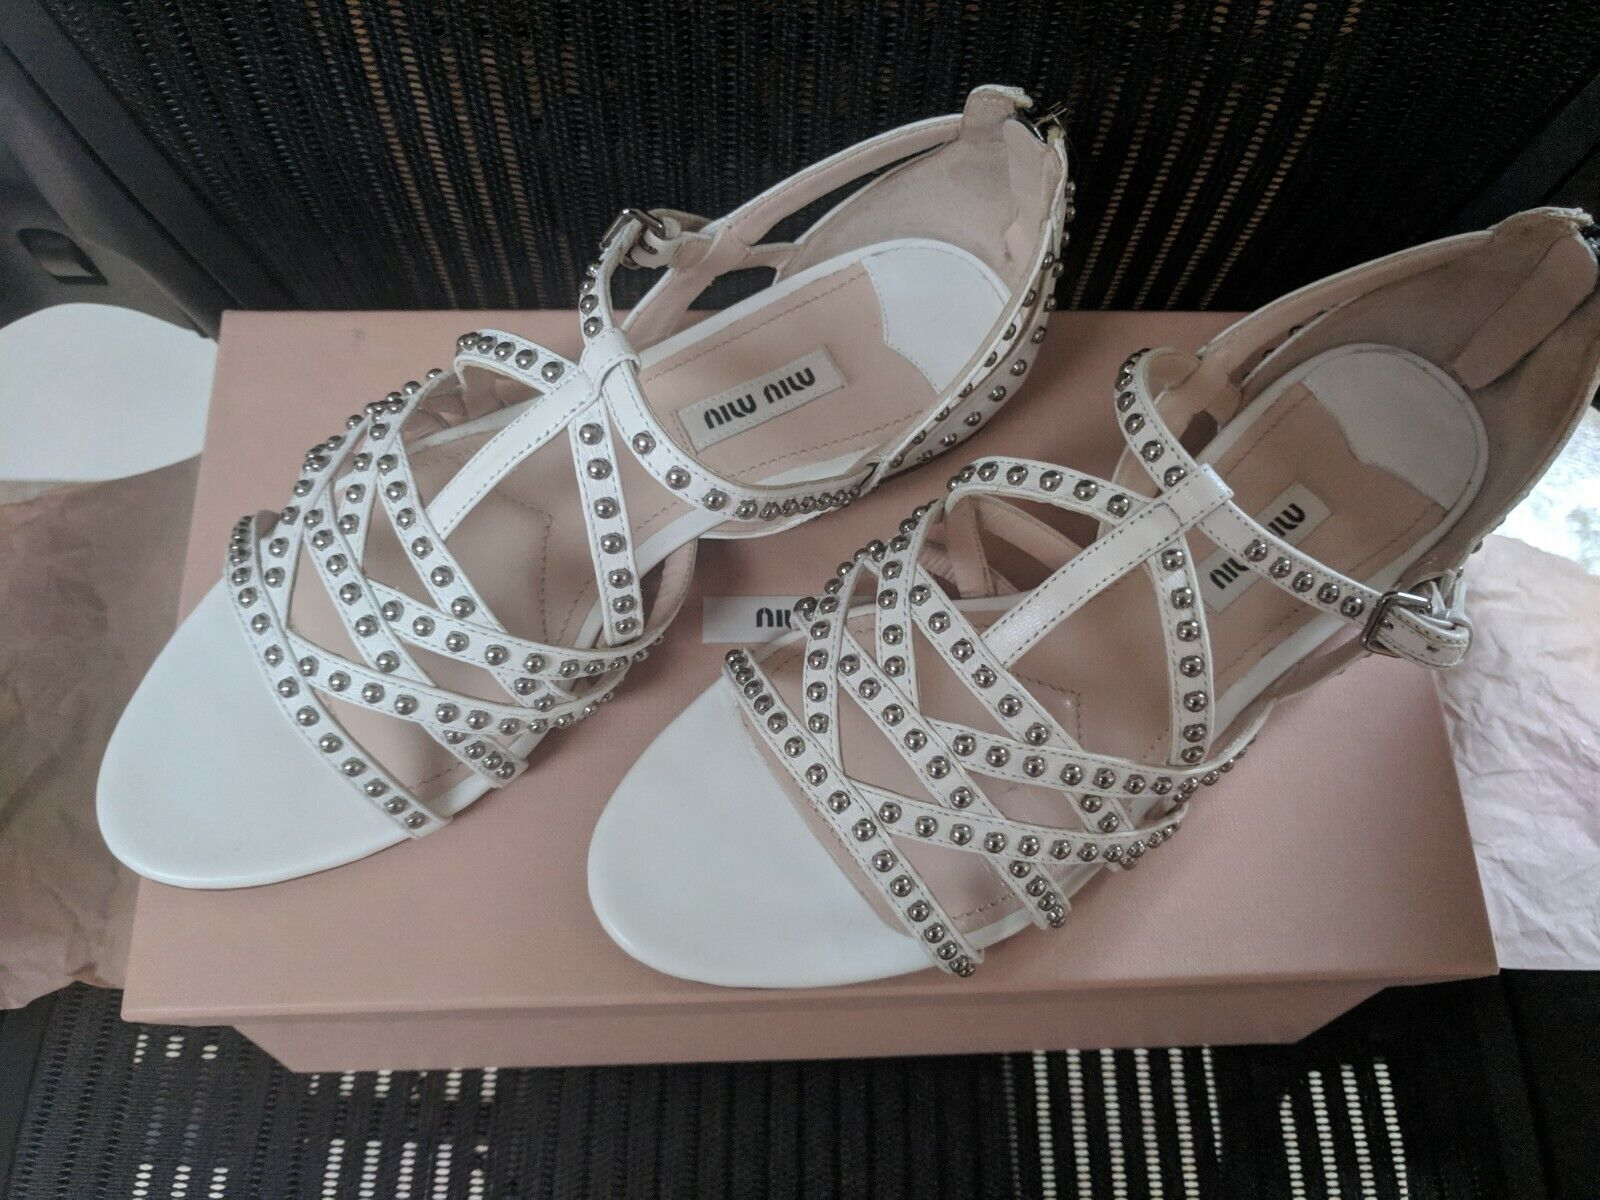 New. Miu Miu Studded Leather Strappy Sandals White 37.5  7.5